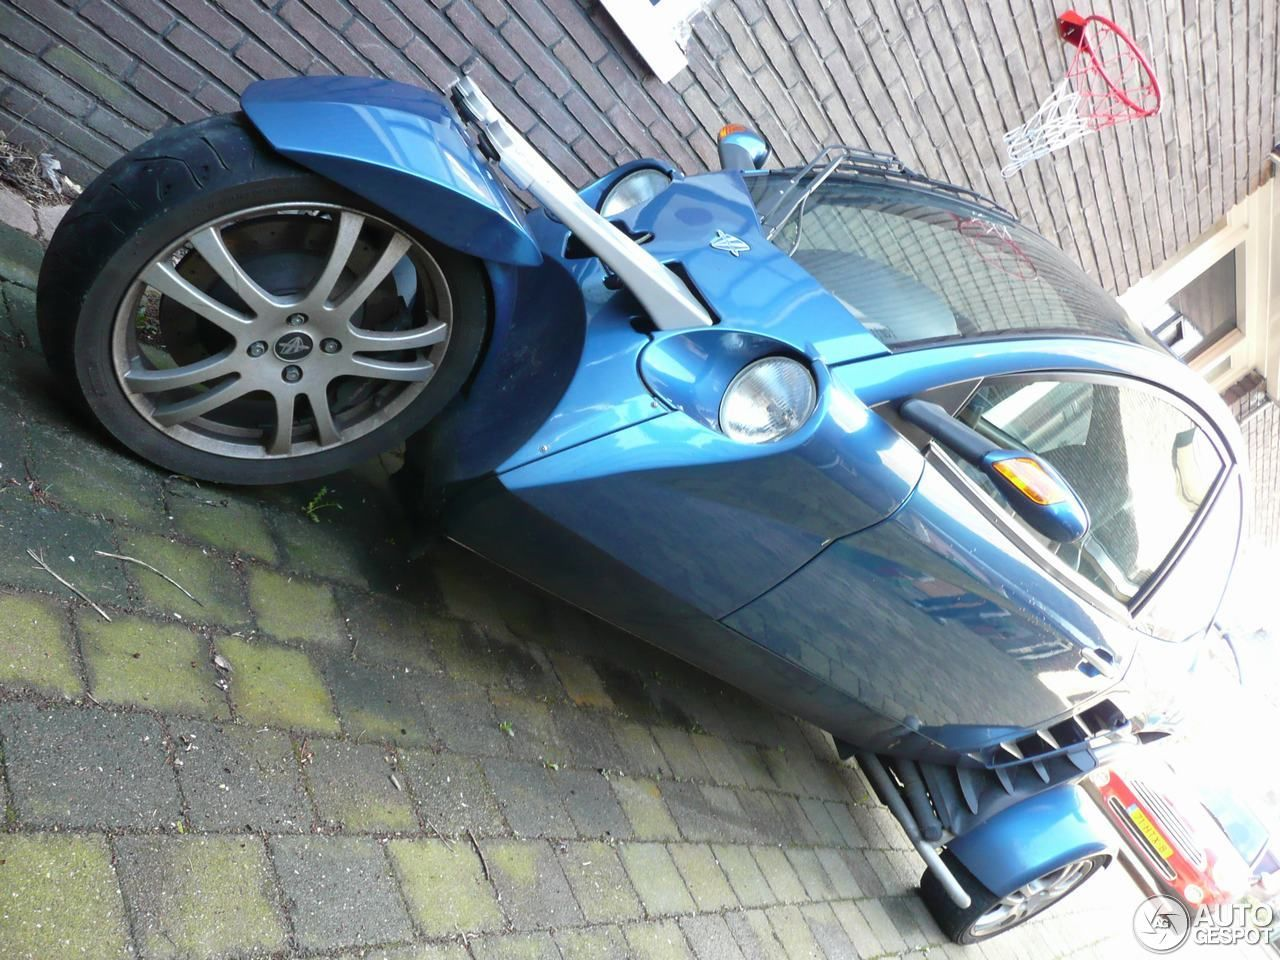 Nice blue Carver One in Netherlands the home of the Carver